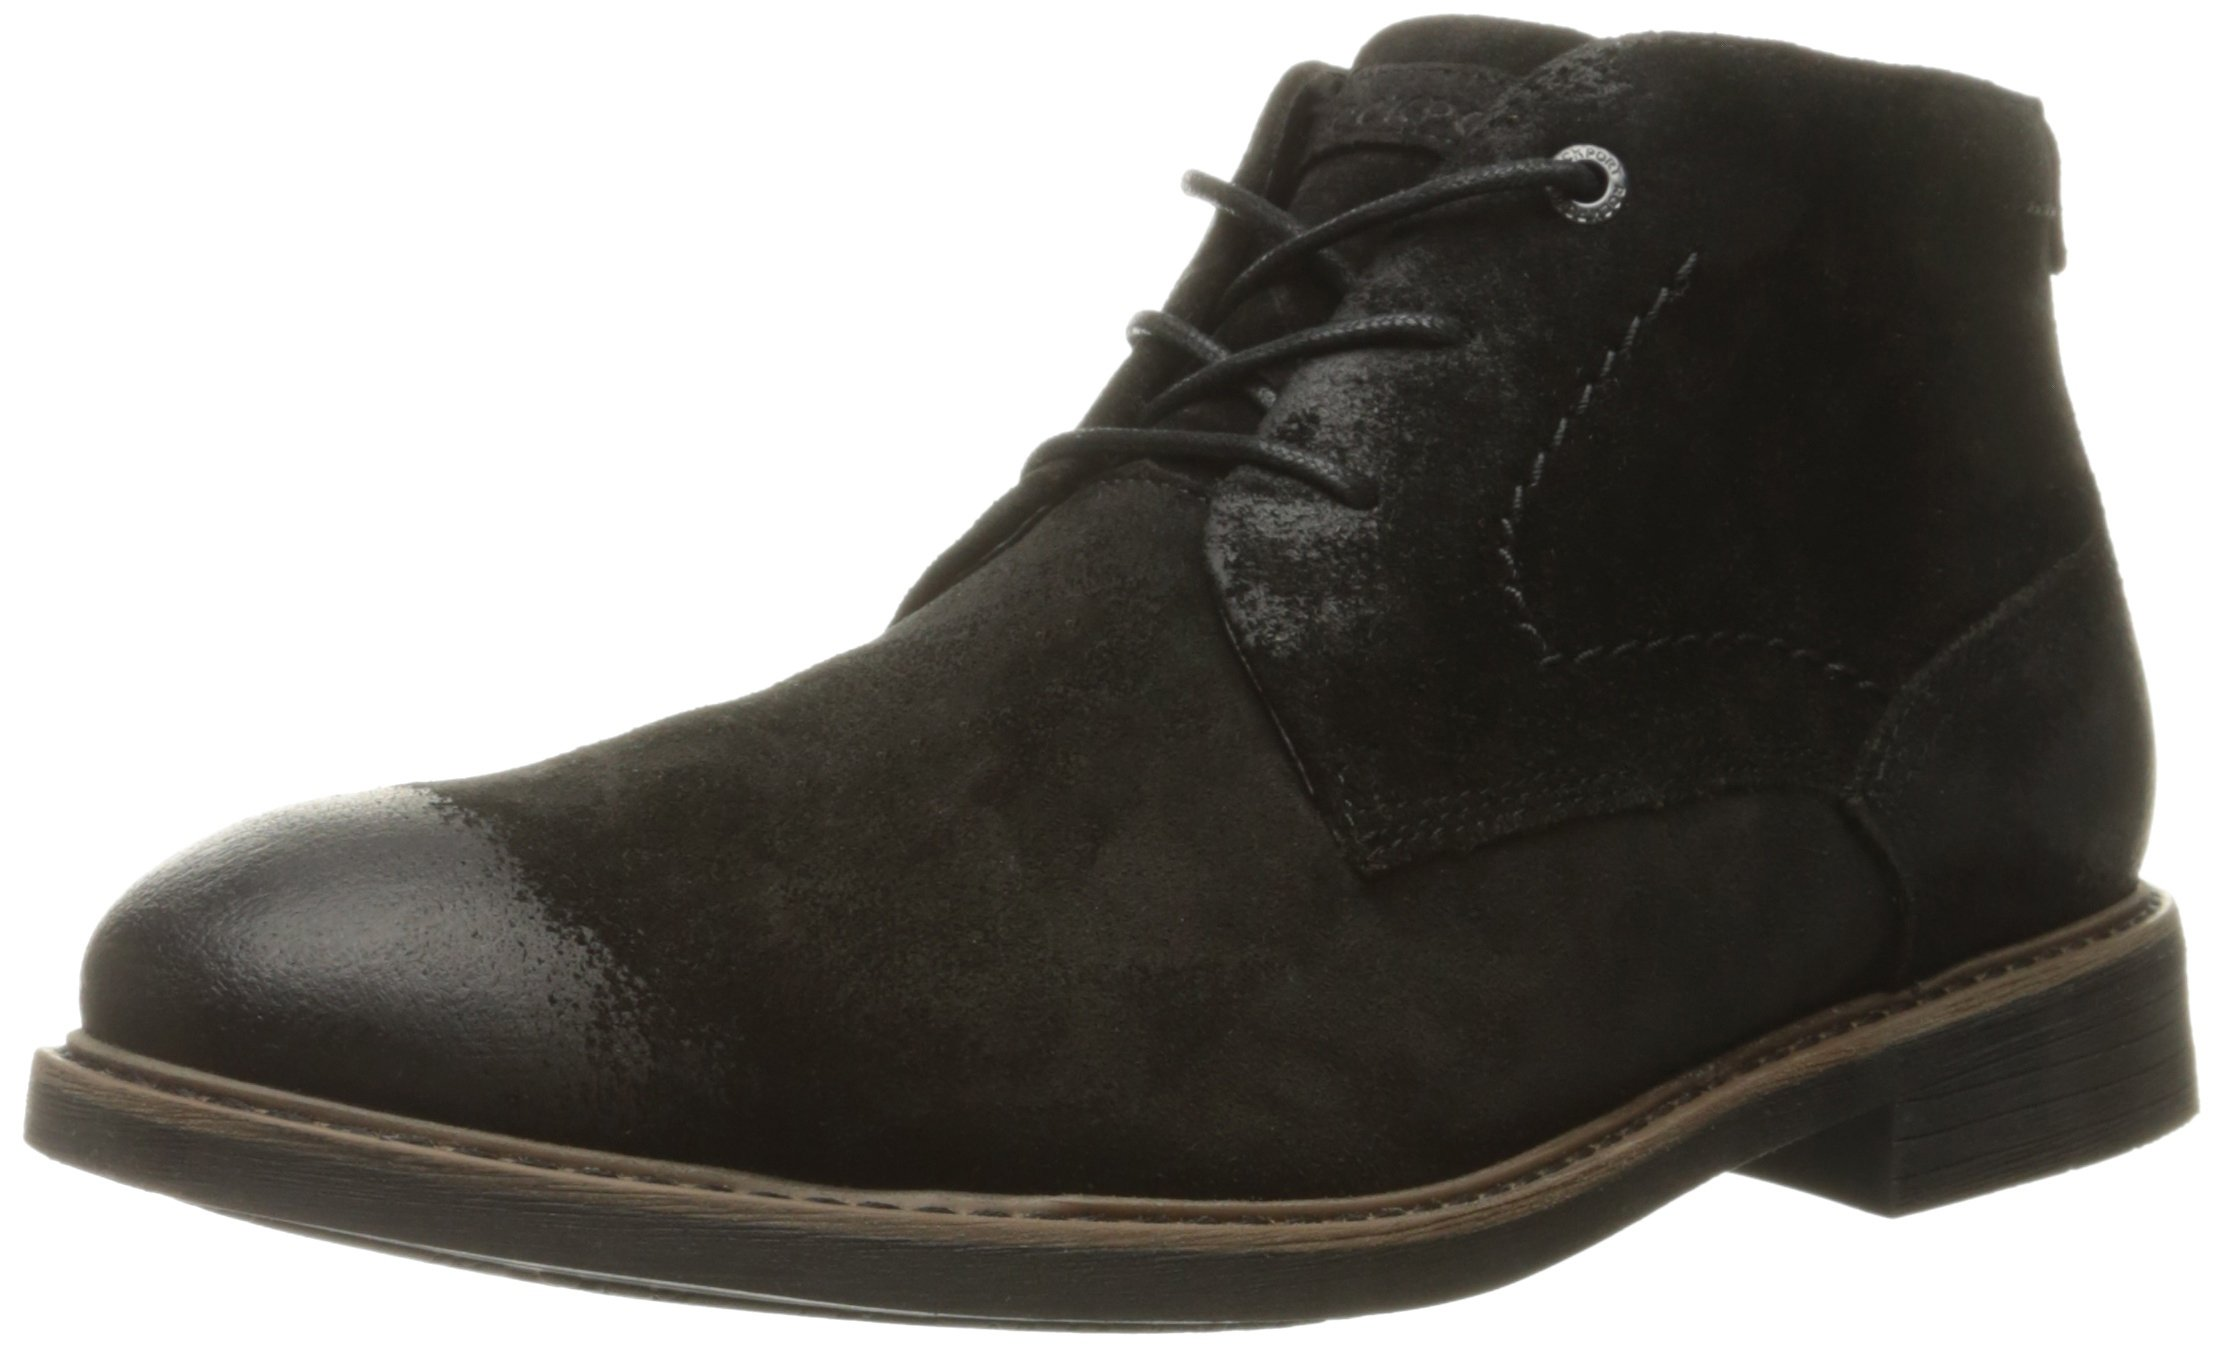 Rockport Men's Classic Break Chukka Boot- Black Suede-12 M